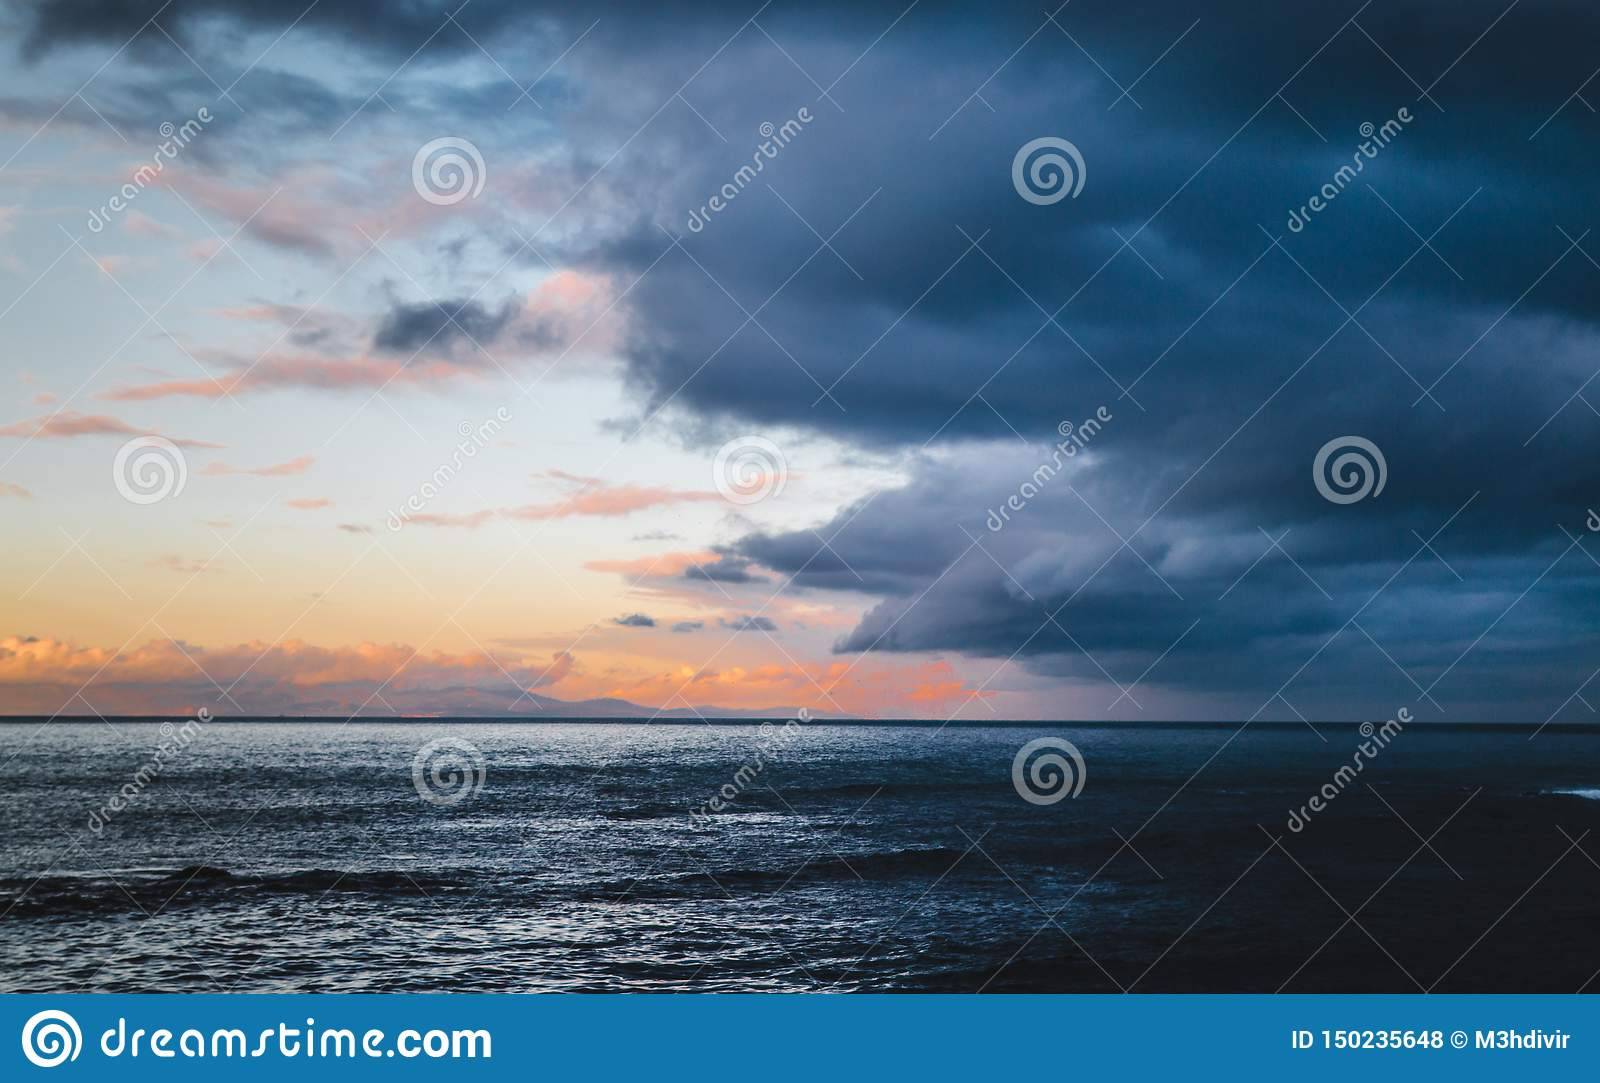 Beautiful colorful sky with approaching storm